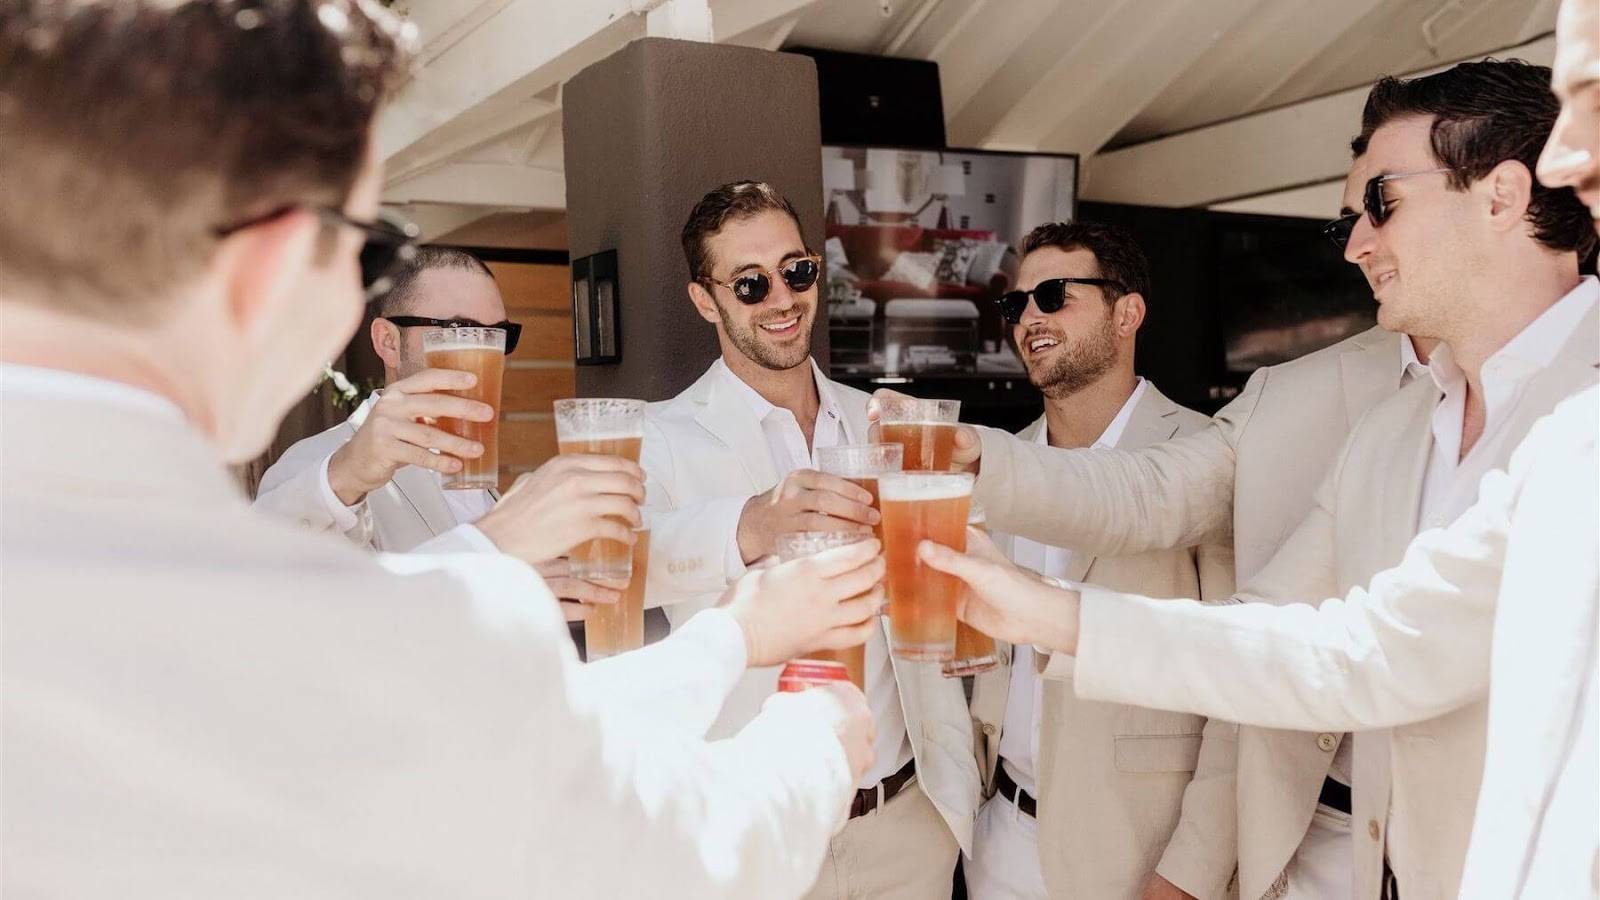 The Top 7 Places to Host Your Pittsburgh Bachelor Party